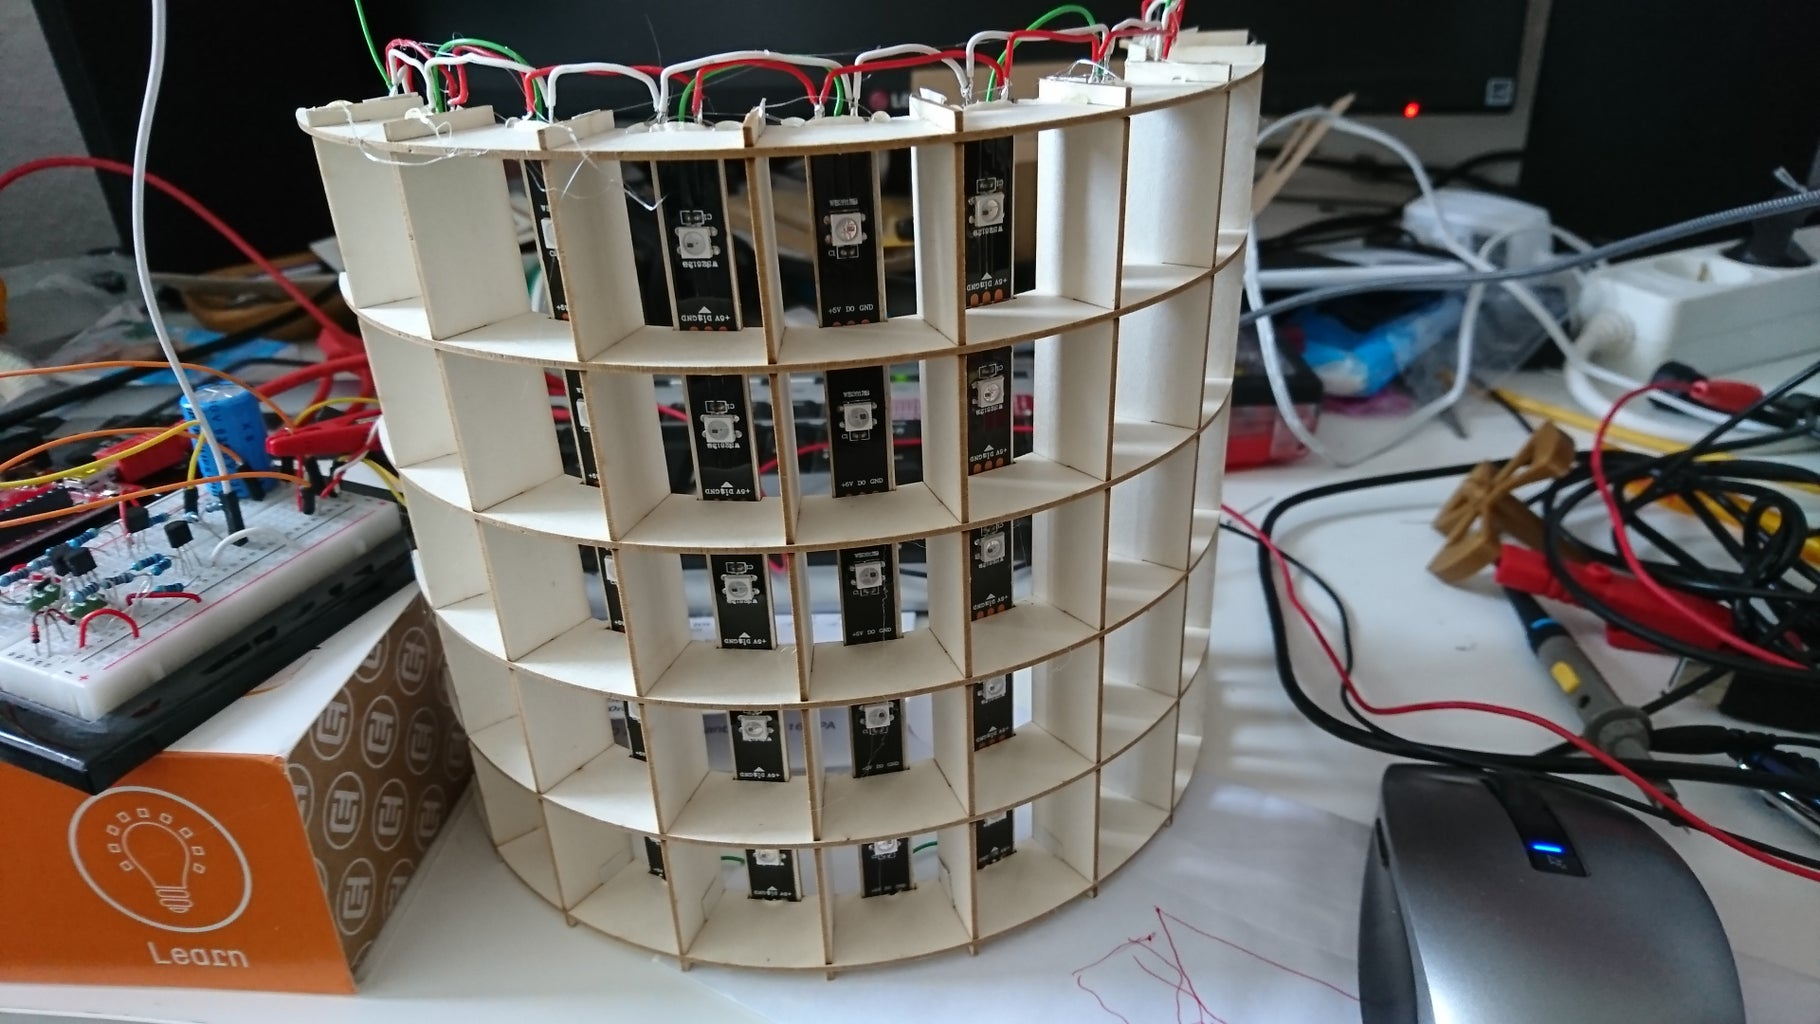 Wiring of LEDs